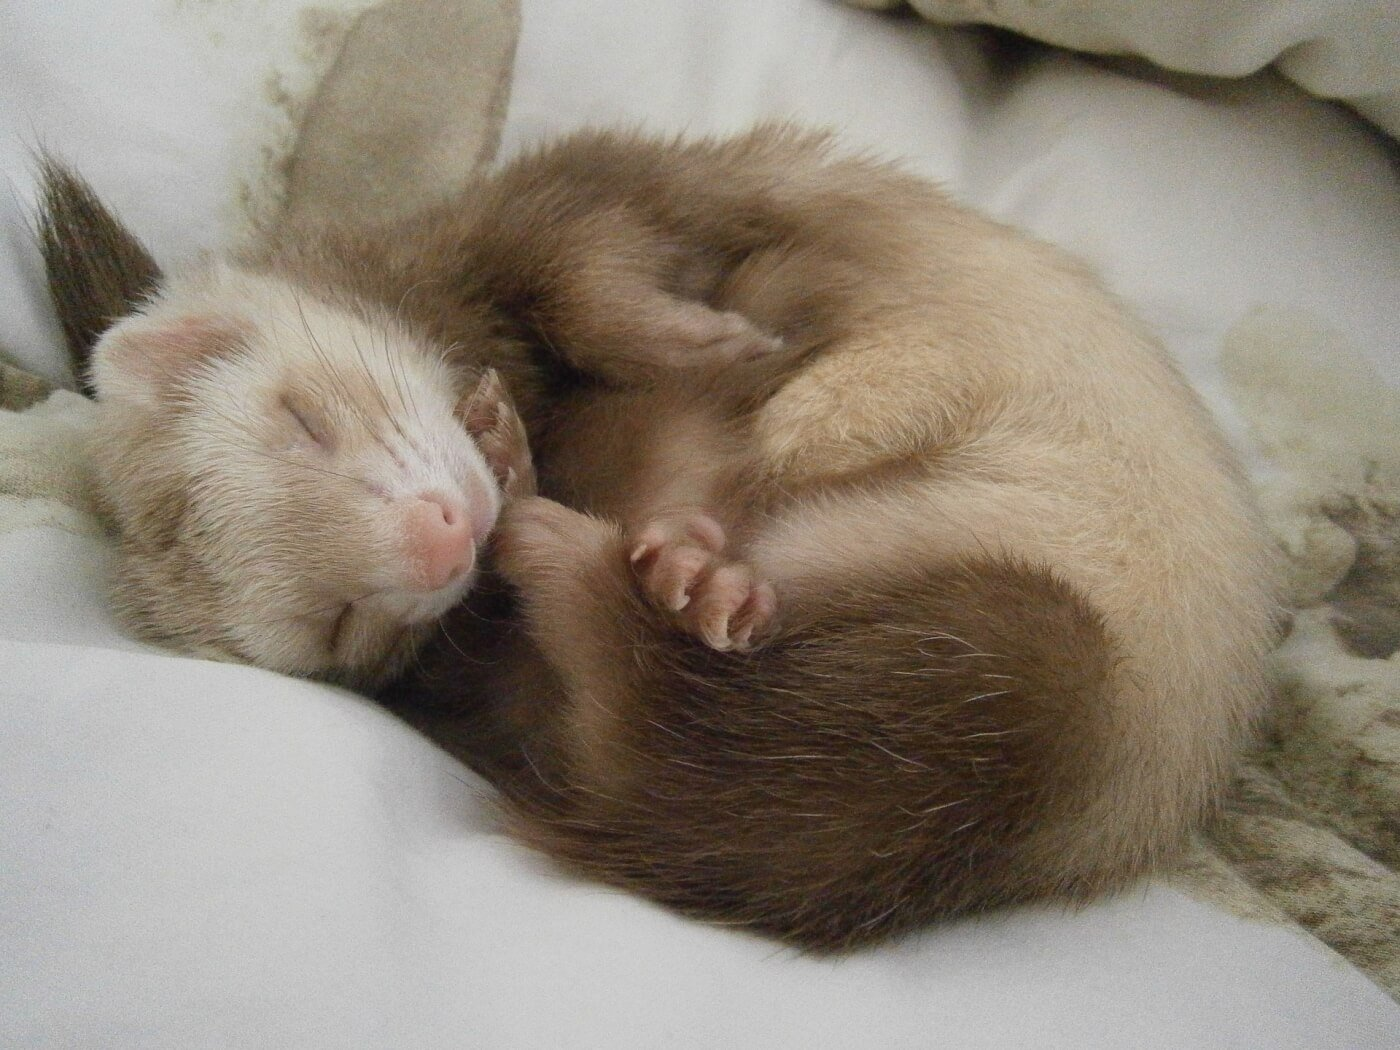 never buy ferrets for sale as pets